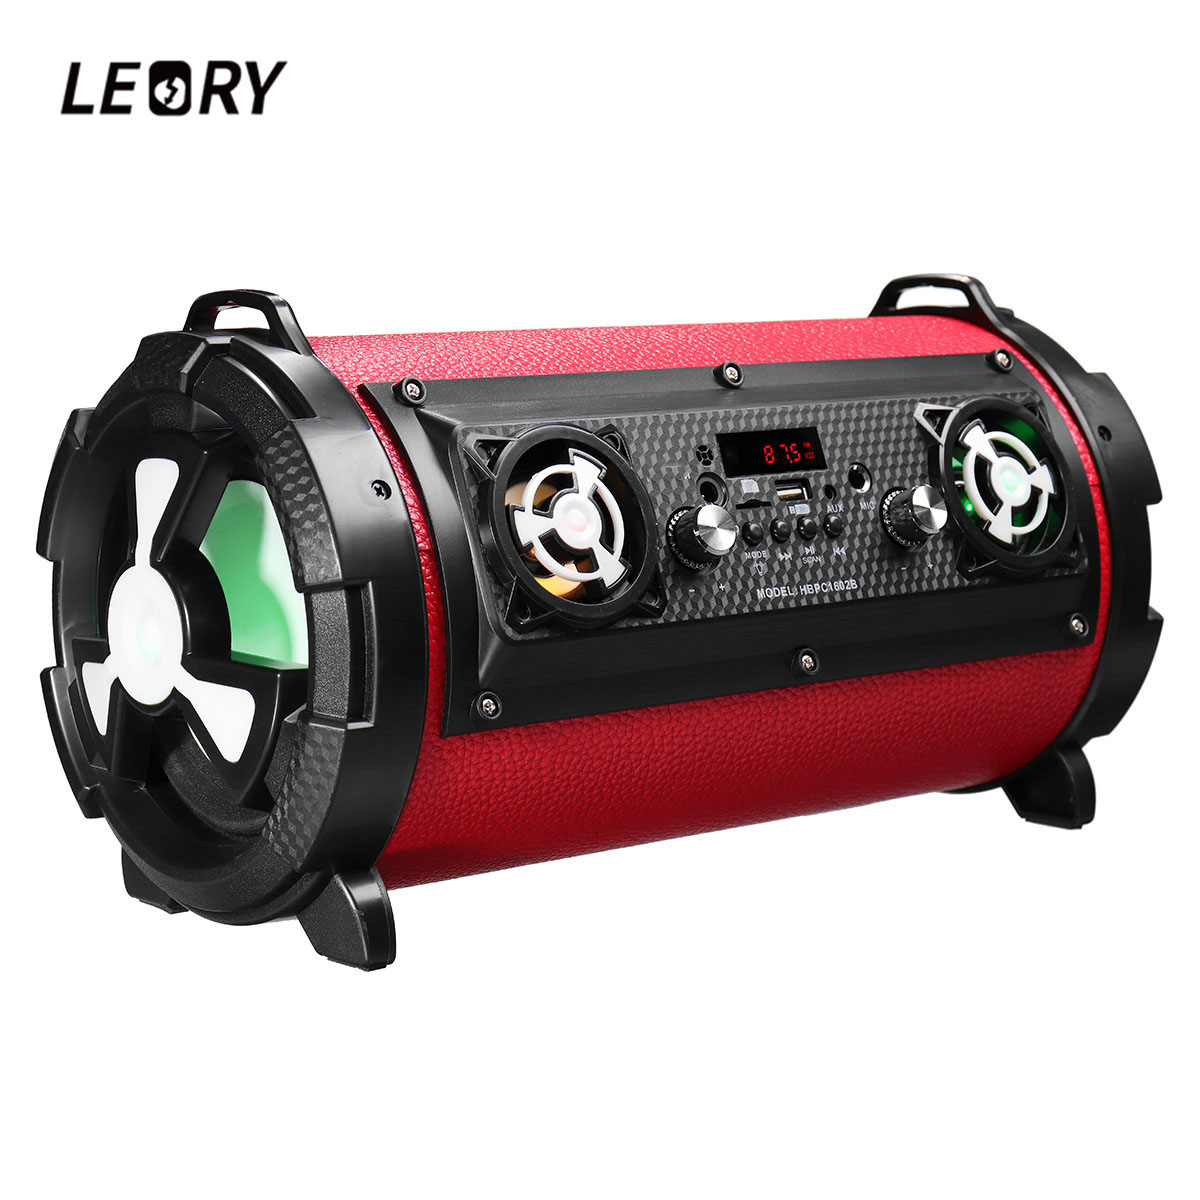 LEORY Smart Bluetooth Speaker Portable 15W Subwoofer Outdoor HiFi Wireless Speaker 3D Stereo Surround leory sy1602 newest outdoor portable bluetooth speaker 15w 2000mah wireless subwoofer speaker with microphone multicolor